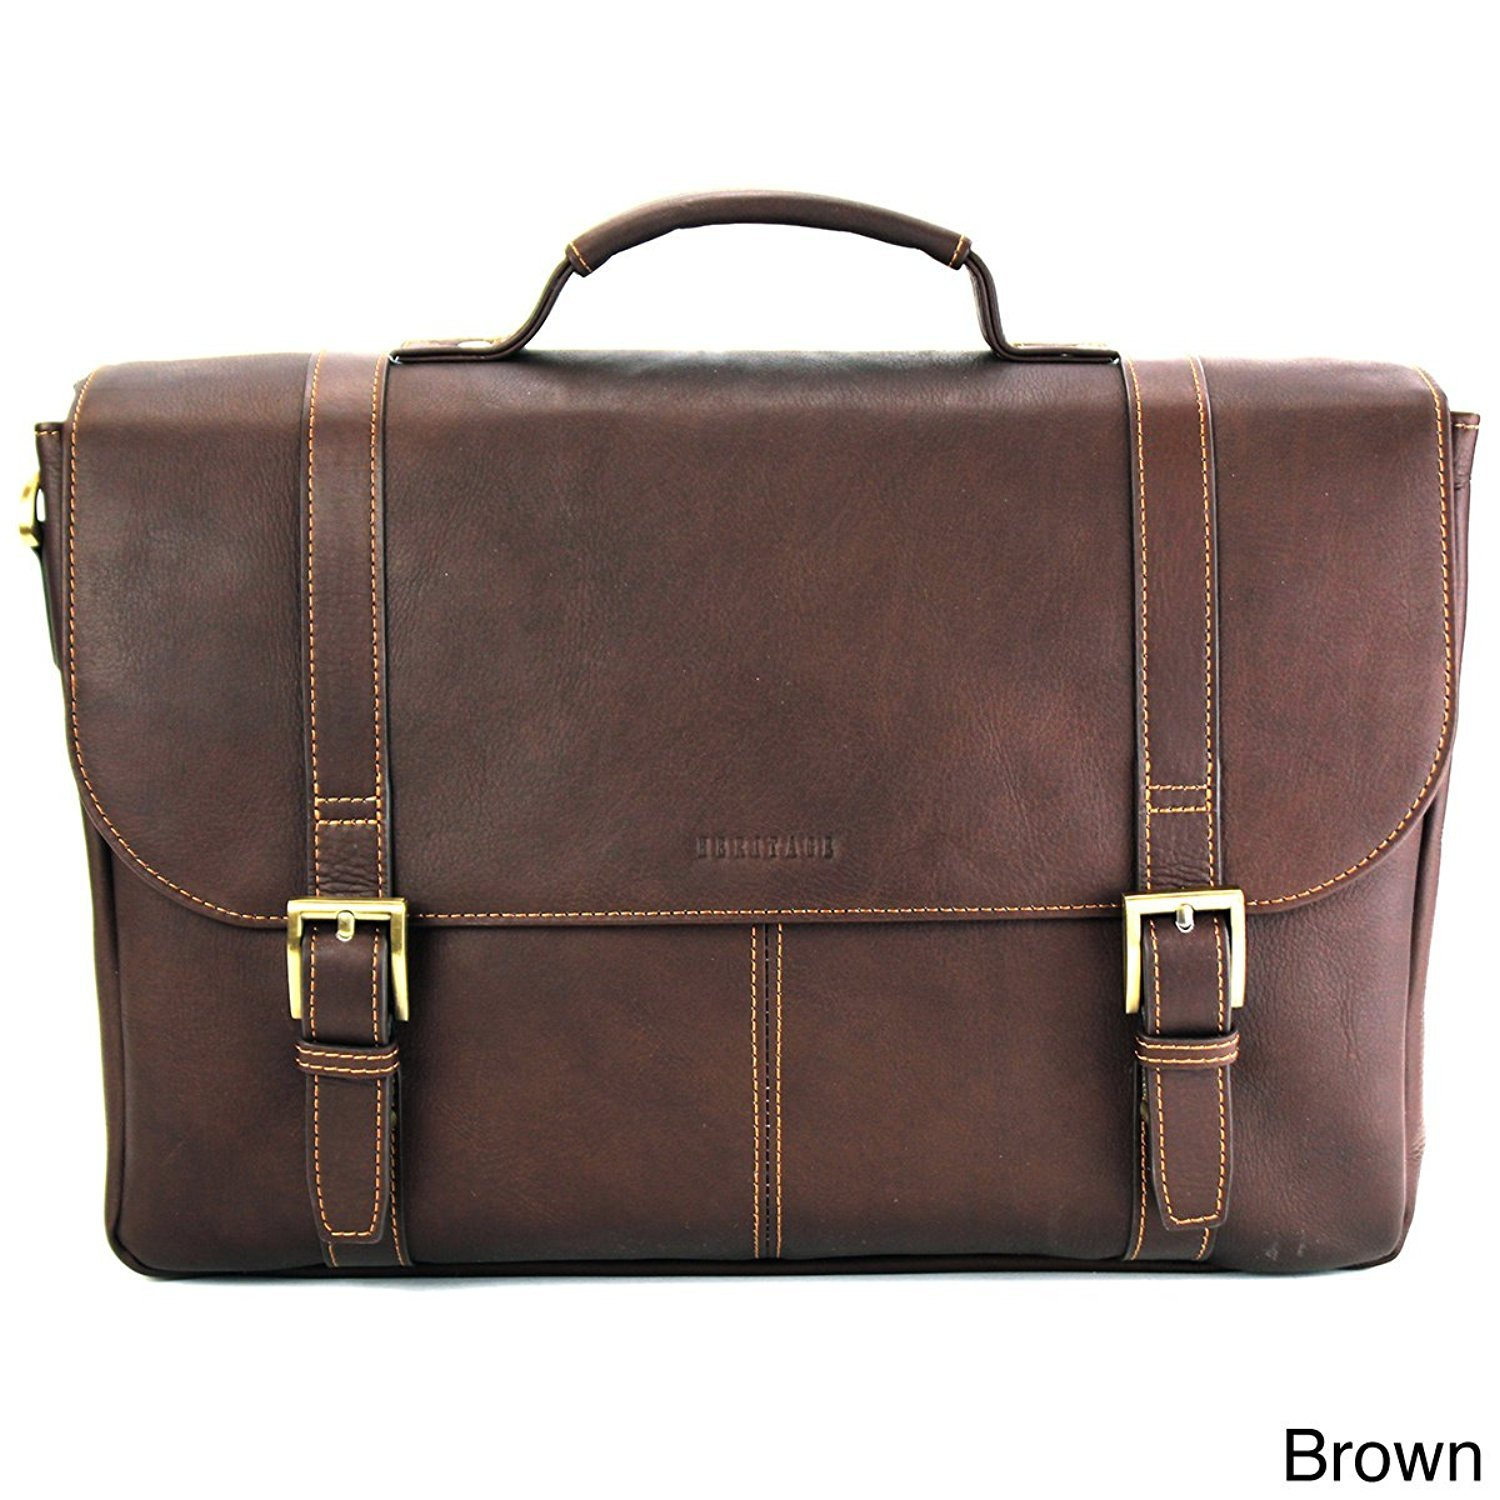 Brown Leather Attorney Briefcase, Lawyers Messenger Bag Business Laptops by DSOS (Image #1)